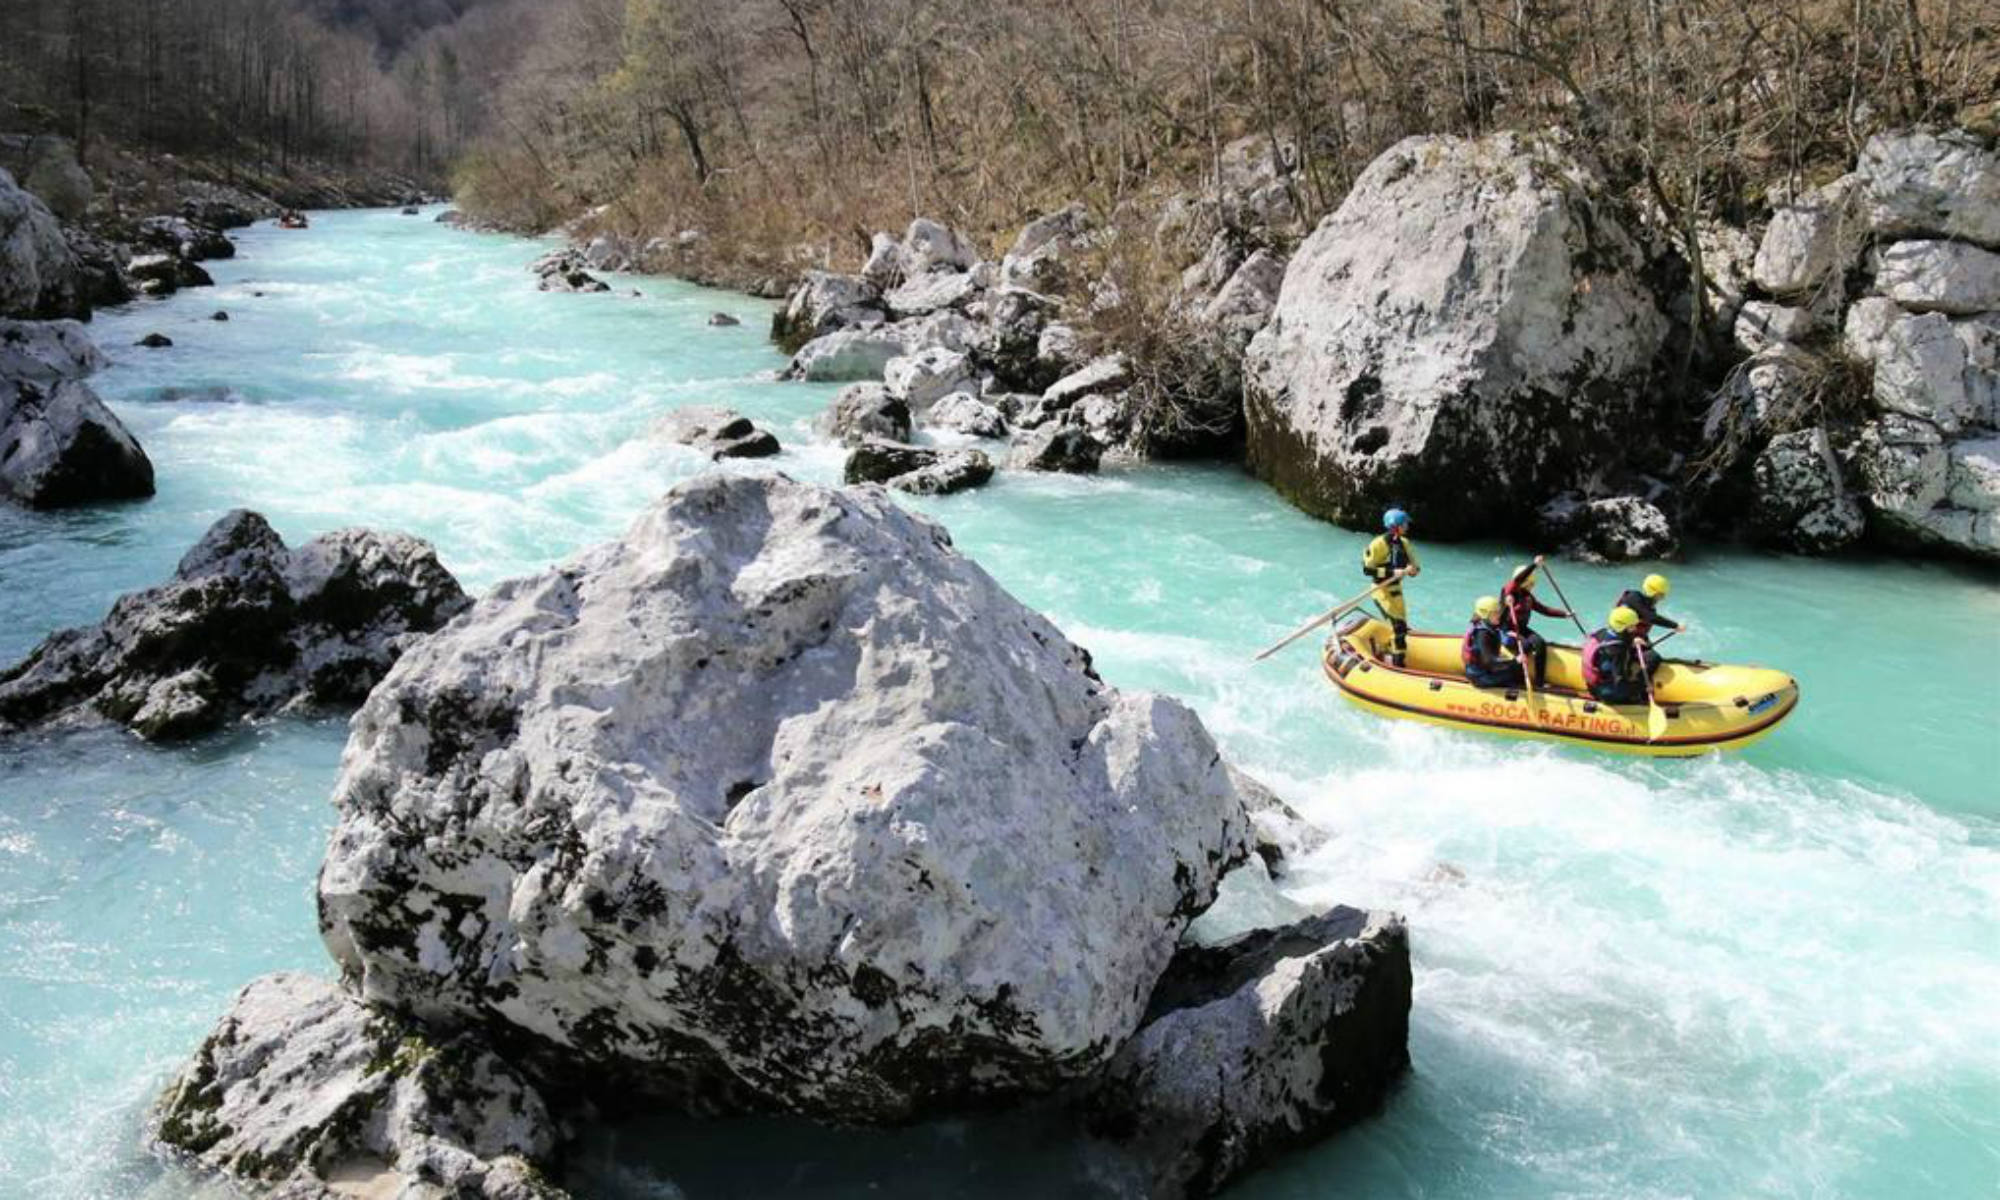 A group of people dodging the rocks in the water while rafting on the Soča River.